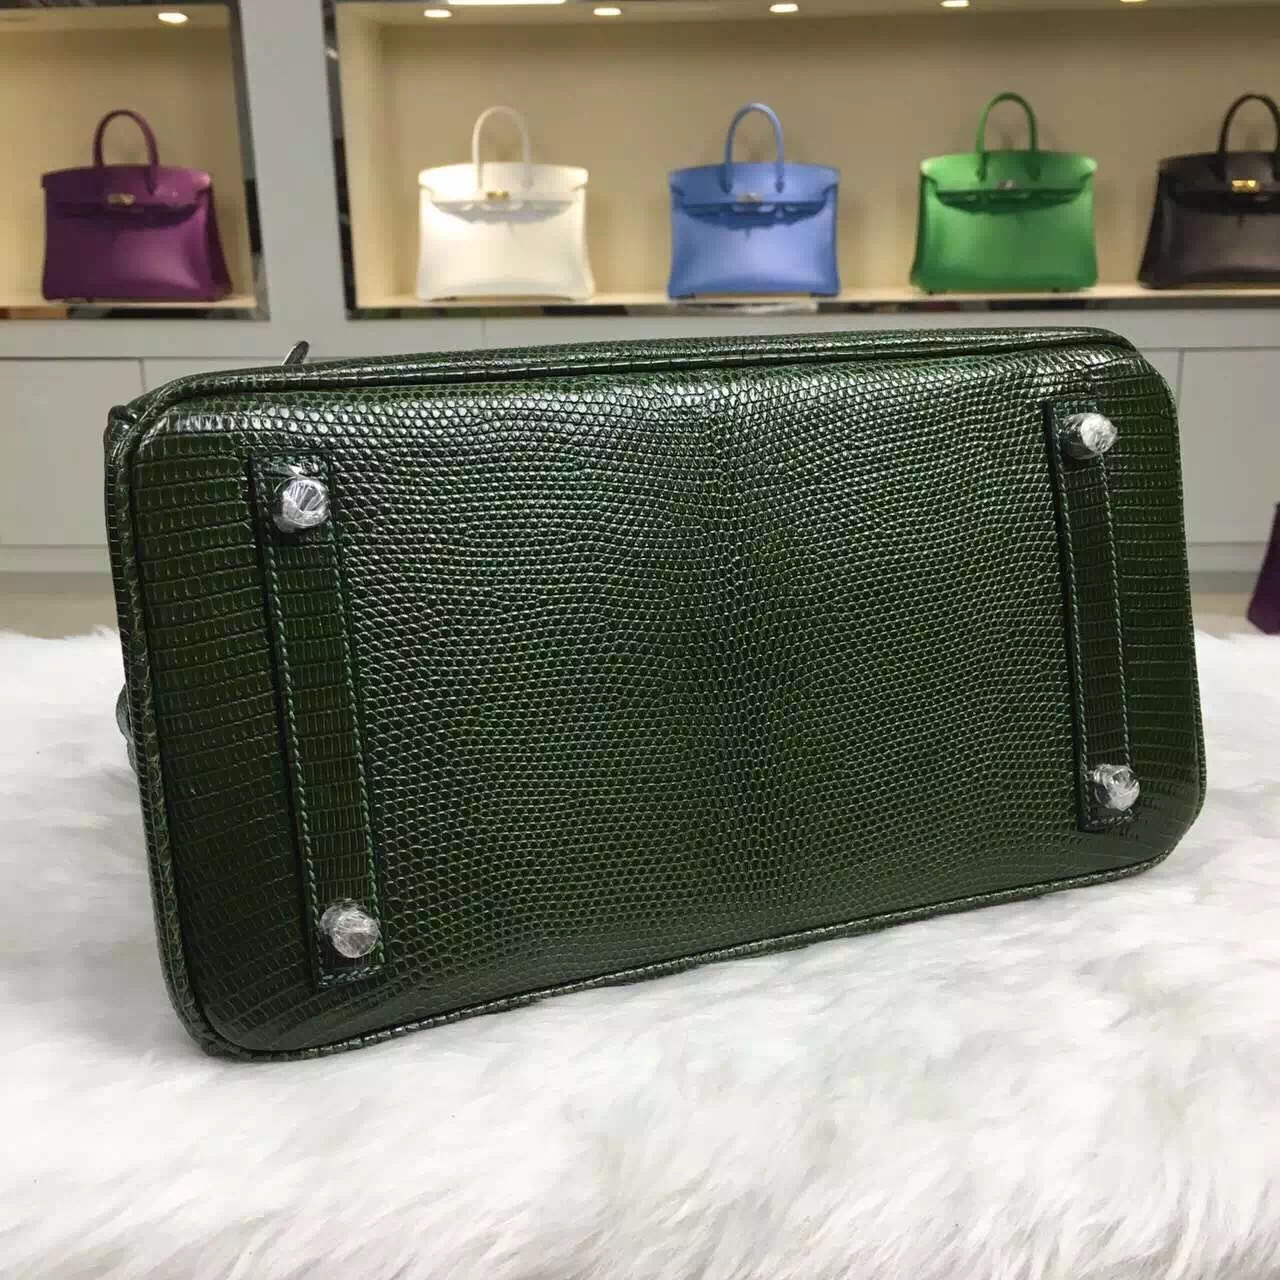 Hand Stitching Hermes Original Lizard Skin Birkin Bag 30CM in Dark Green